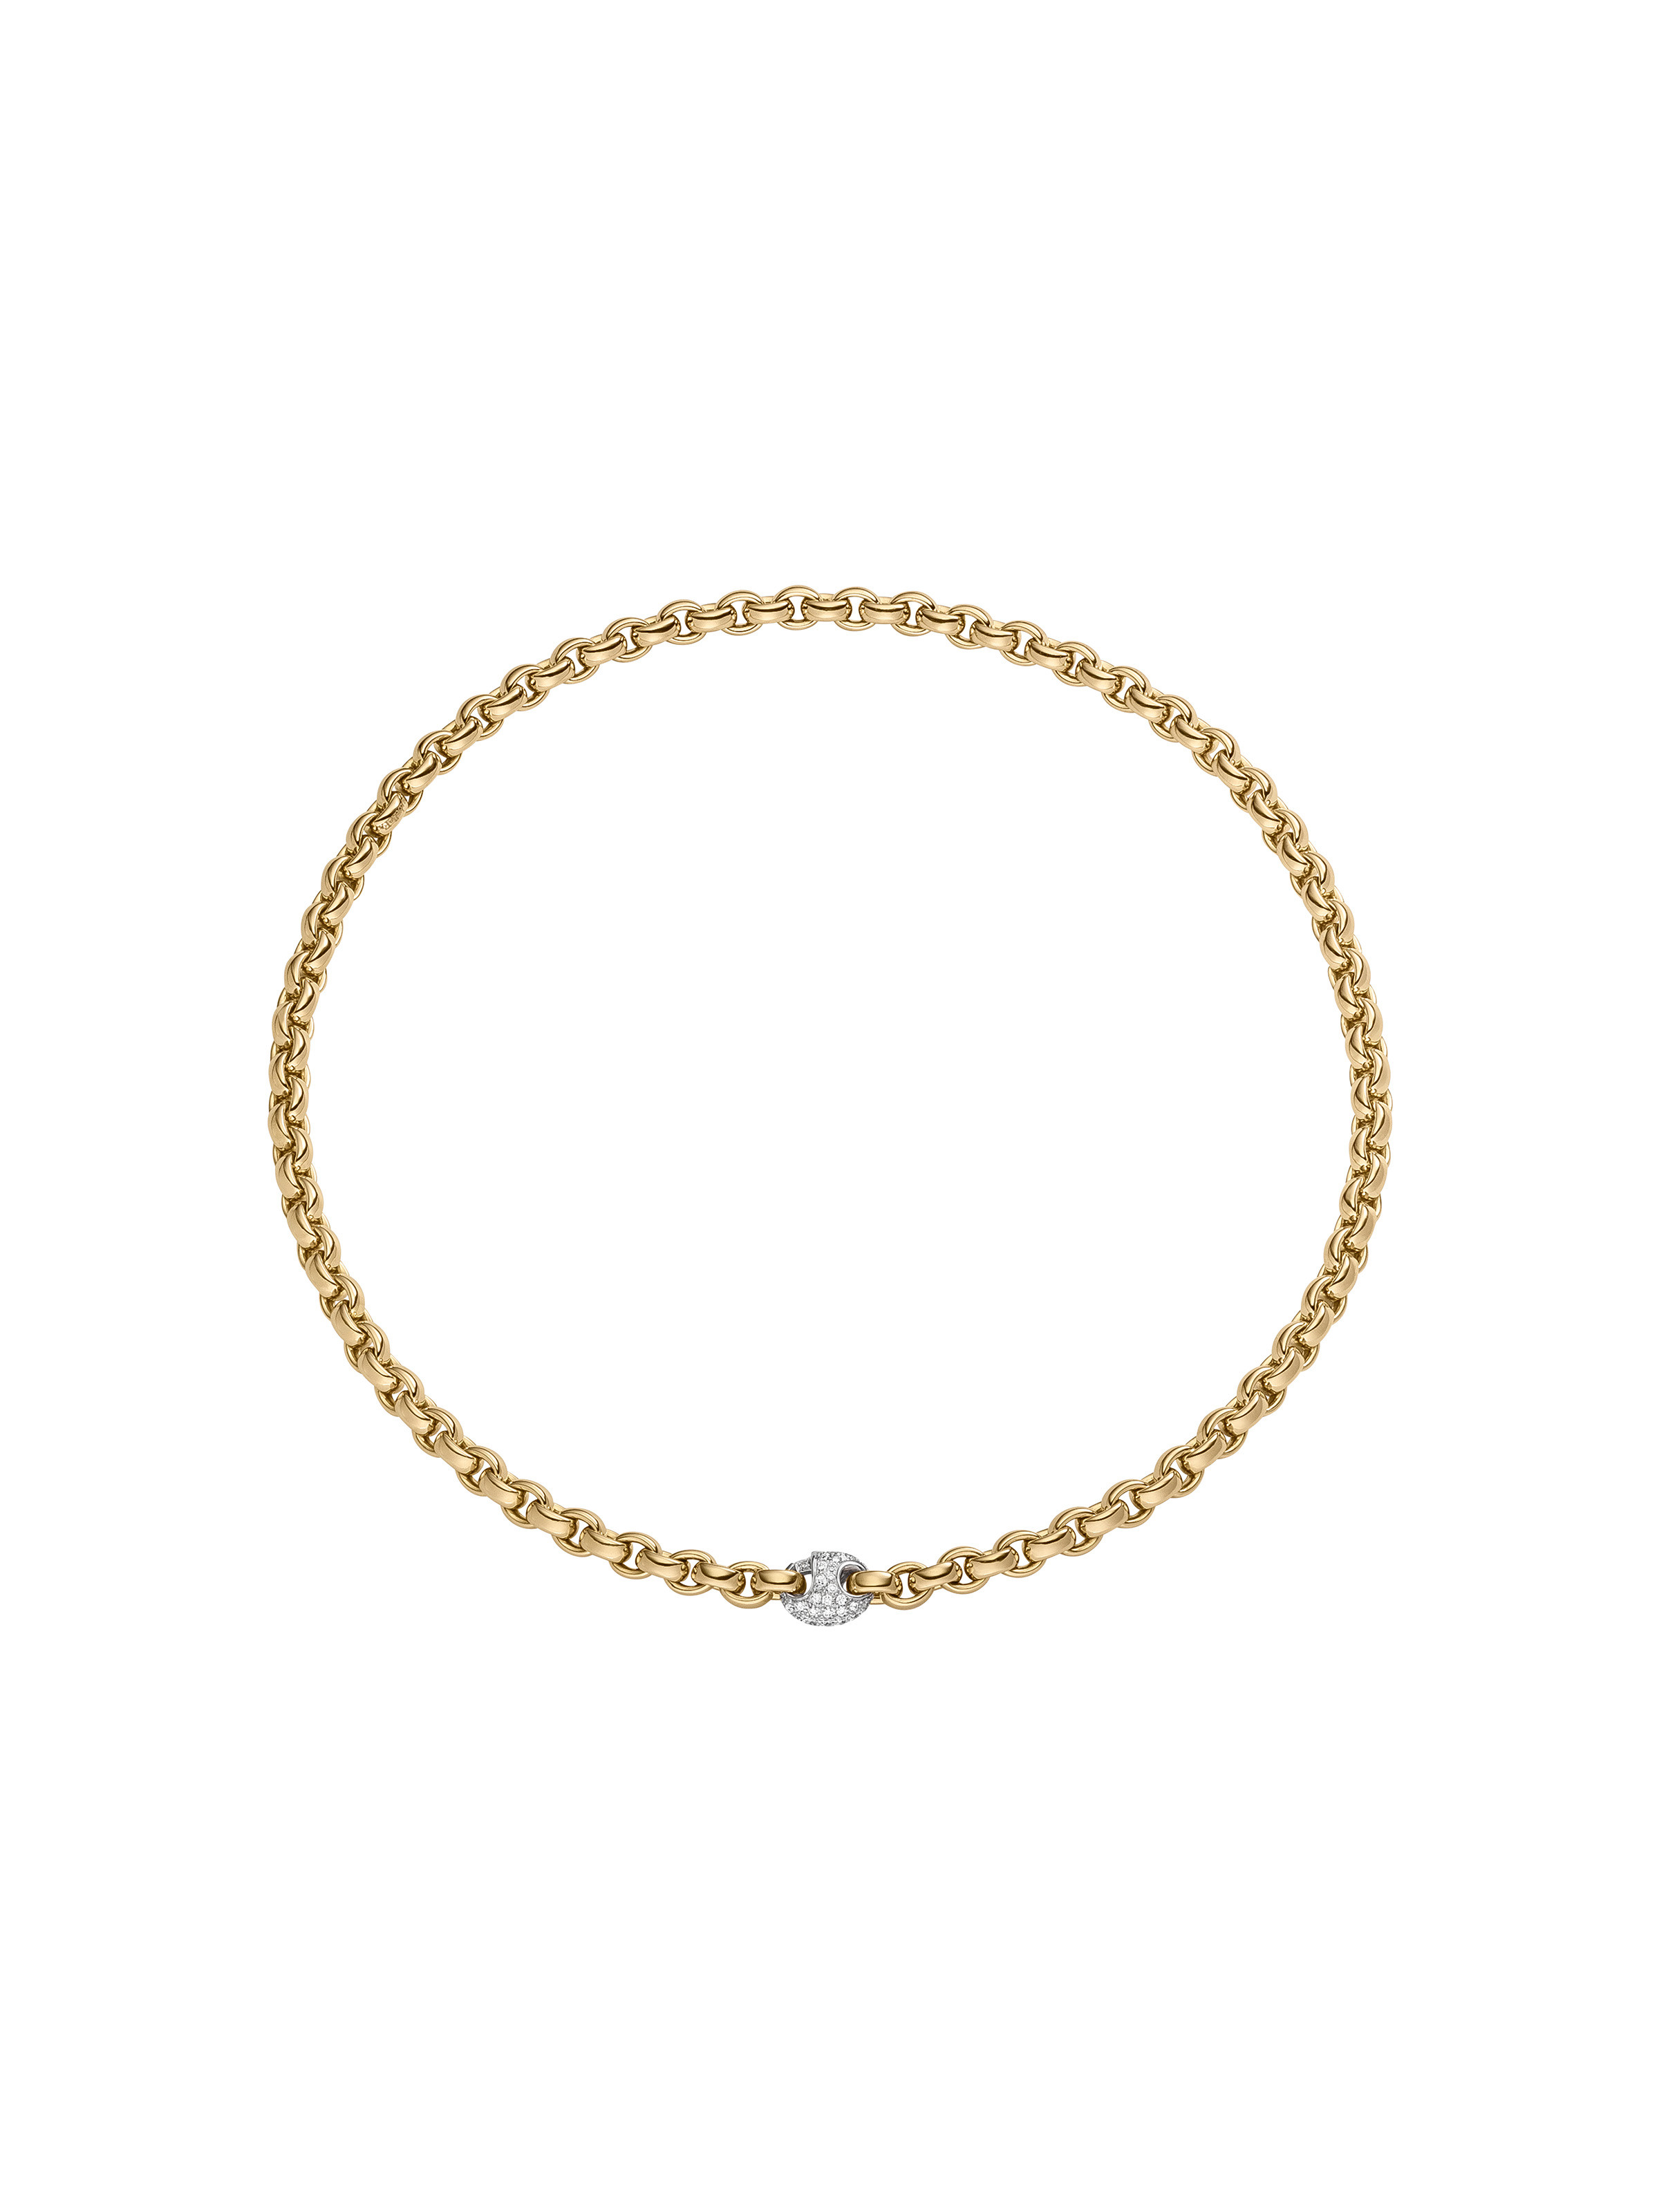 ChaCha 6mm necklace